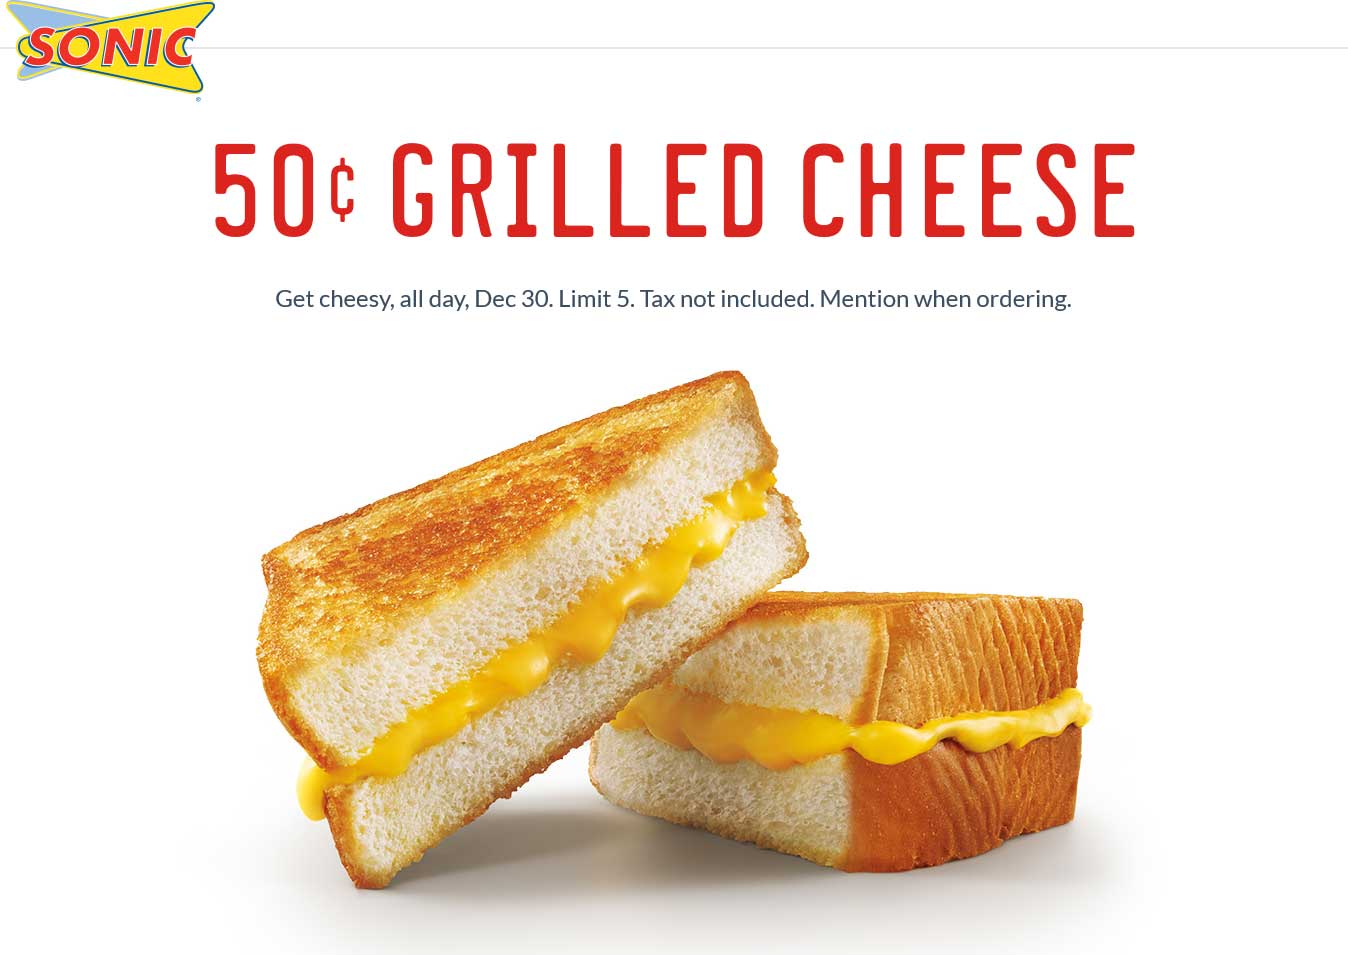 Sonic Drive-In Coupon May 2019 Grilled cheese for .50 cents Wednesday at Sonic Drive-In